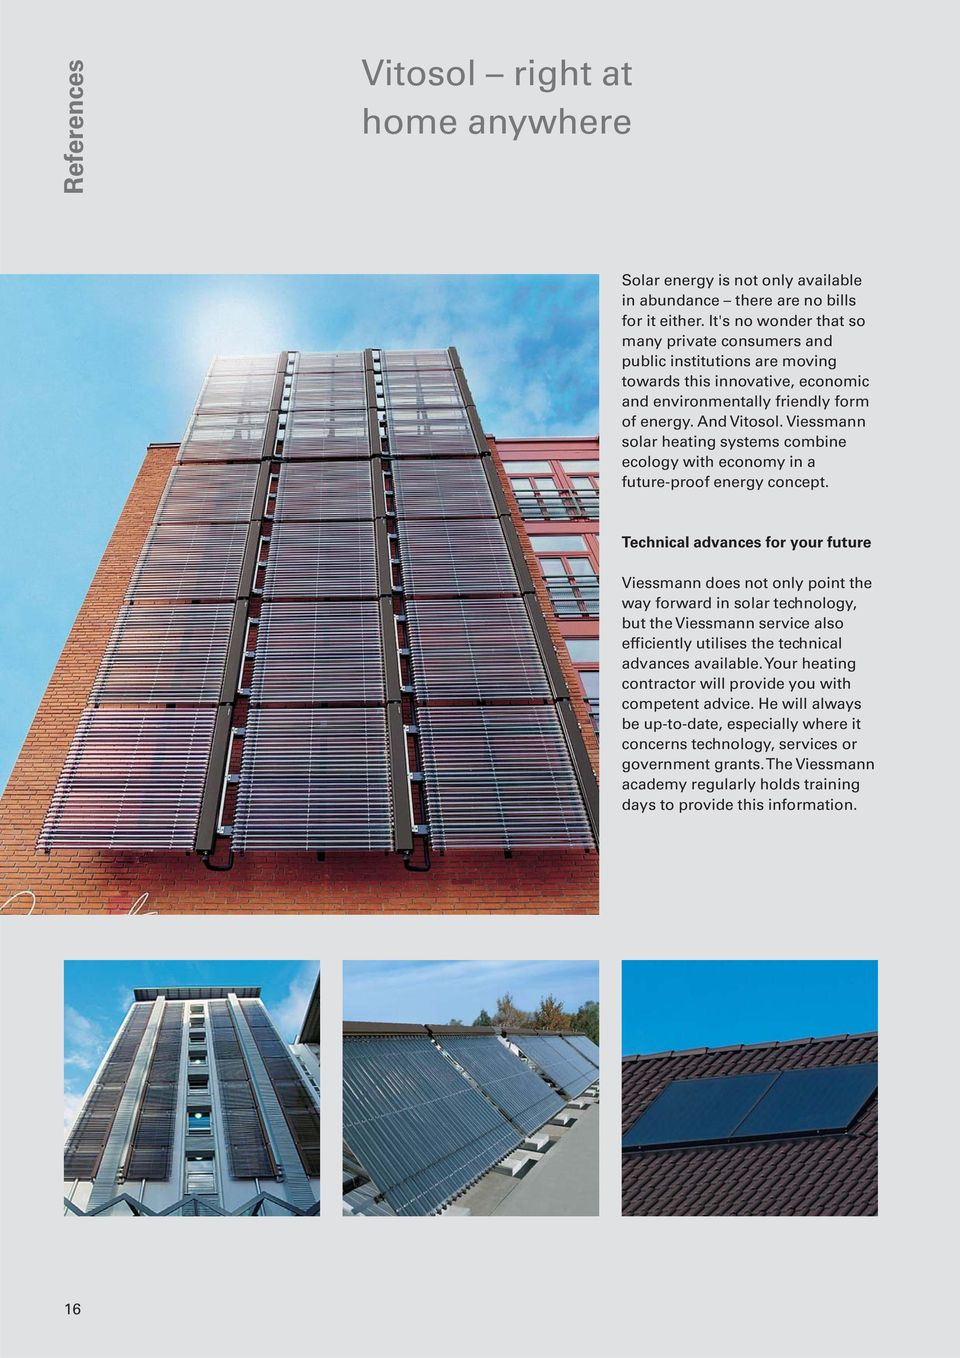 Viessmann solar heating systems combine ecology with economy in a future-proof energy concept.